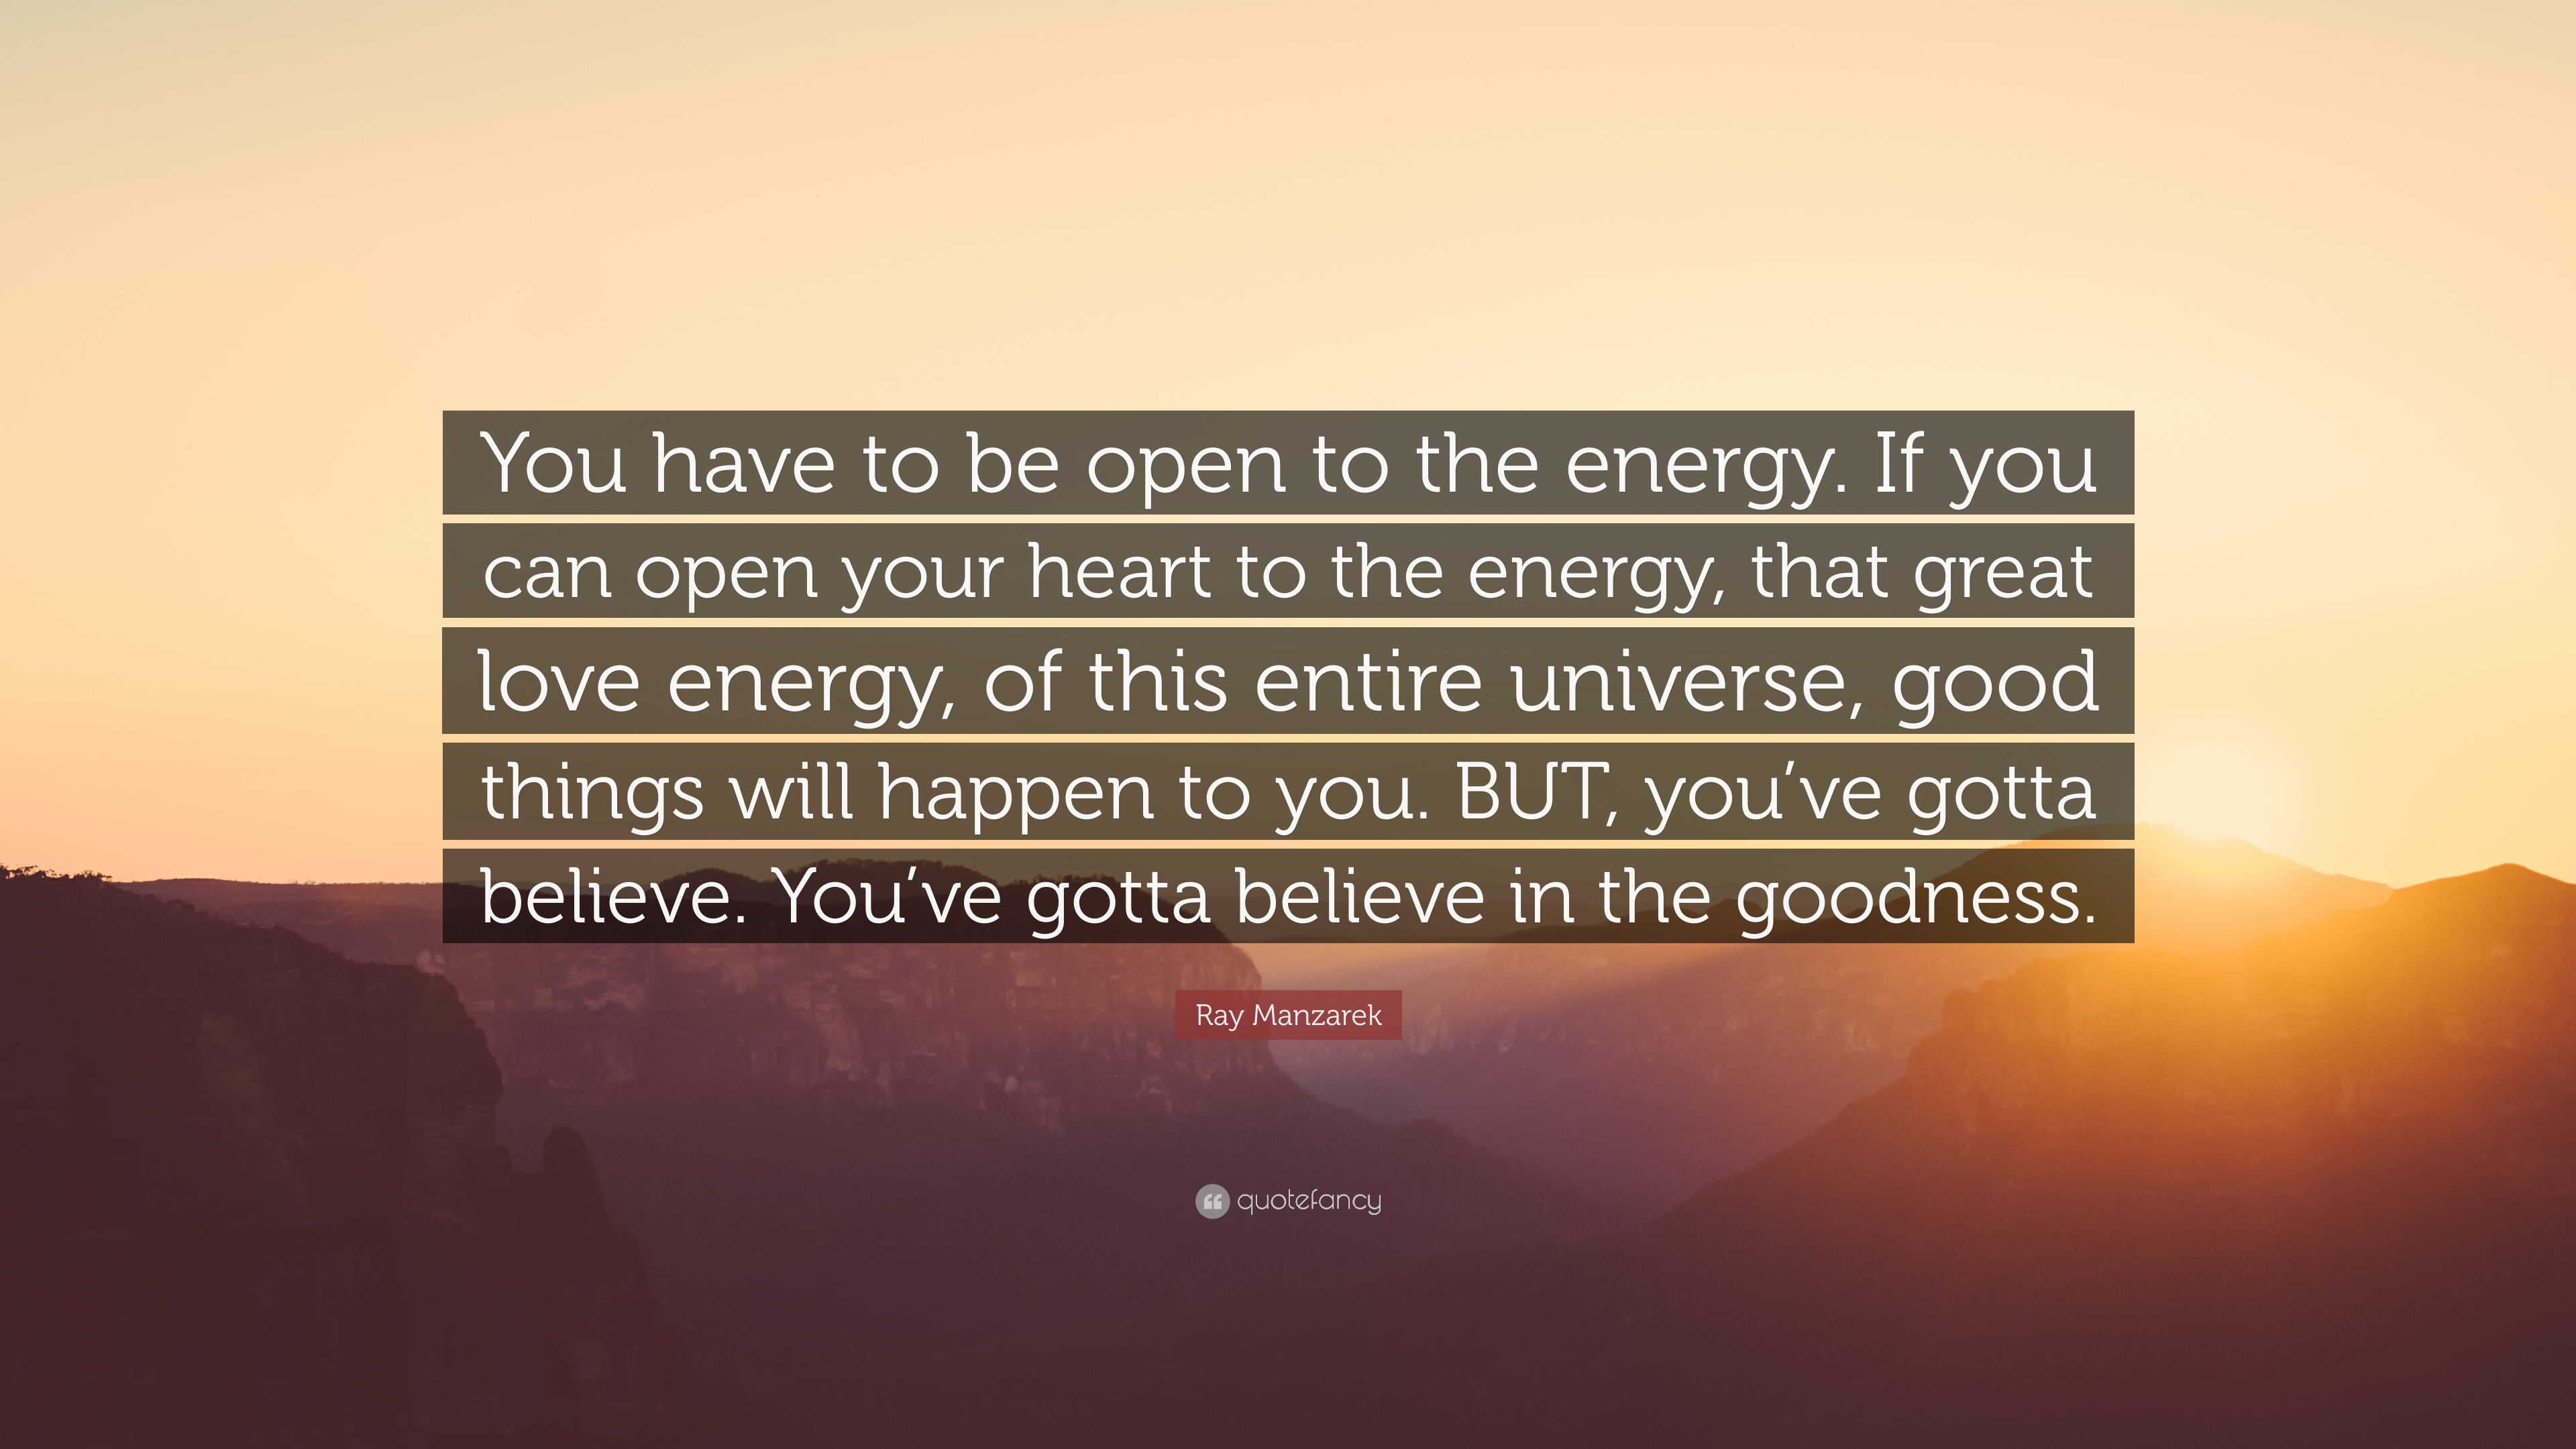 Good Energy Quotes Ray Manzarek Quotes 23 Wallpapers  Quotefancy